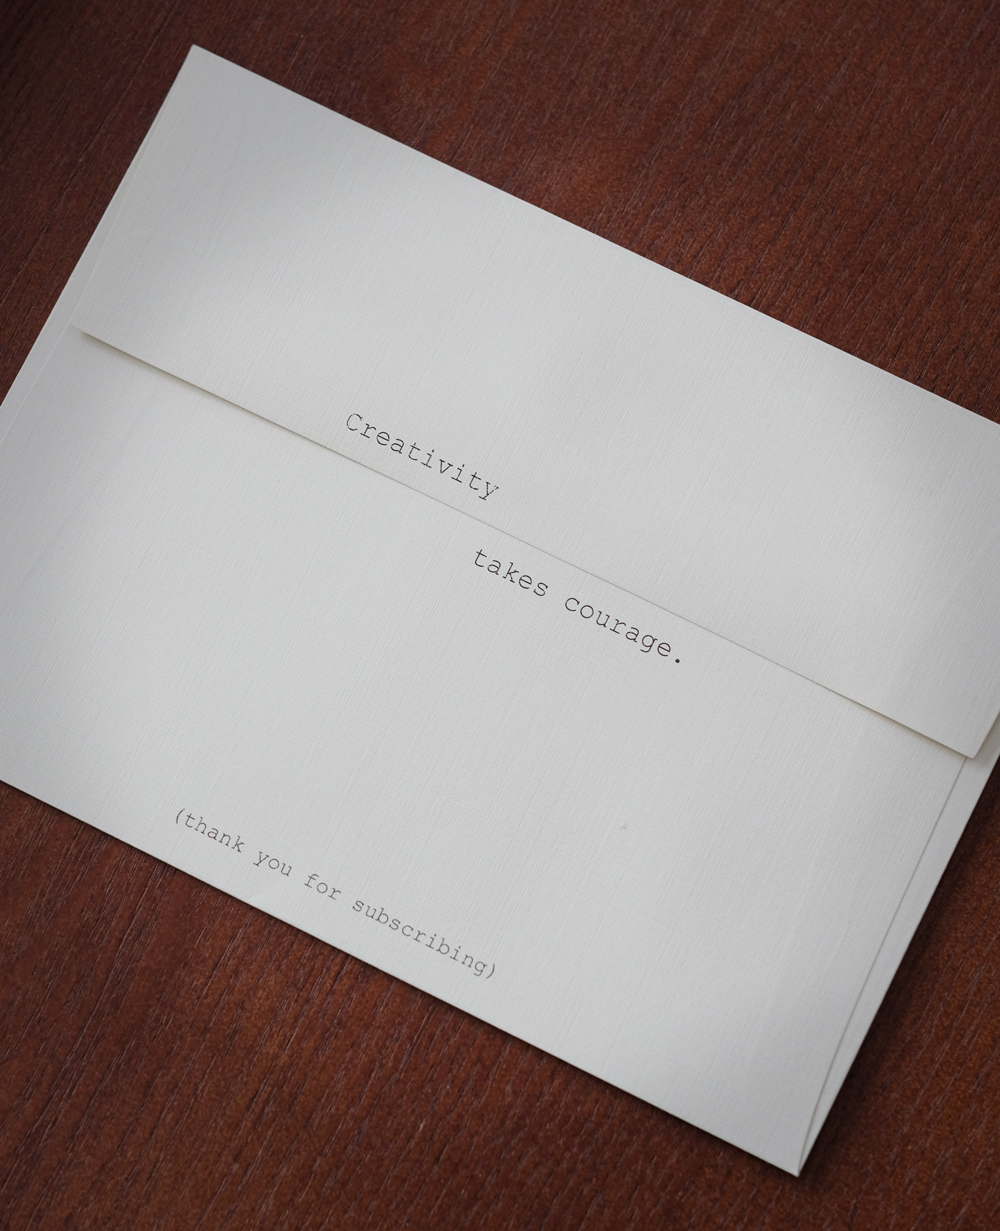 The back of the envelope used for Letter #3.